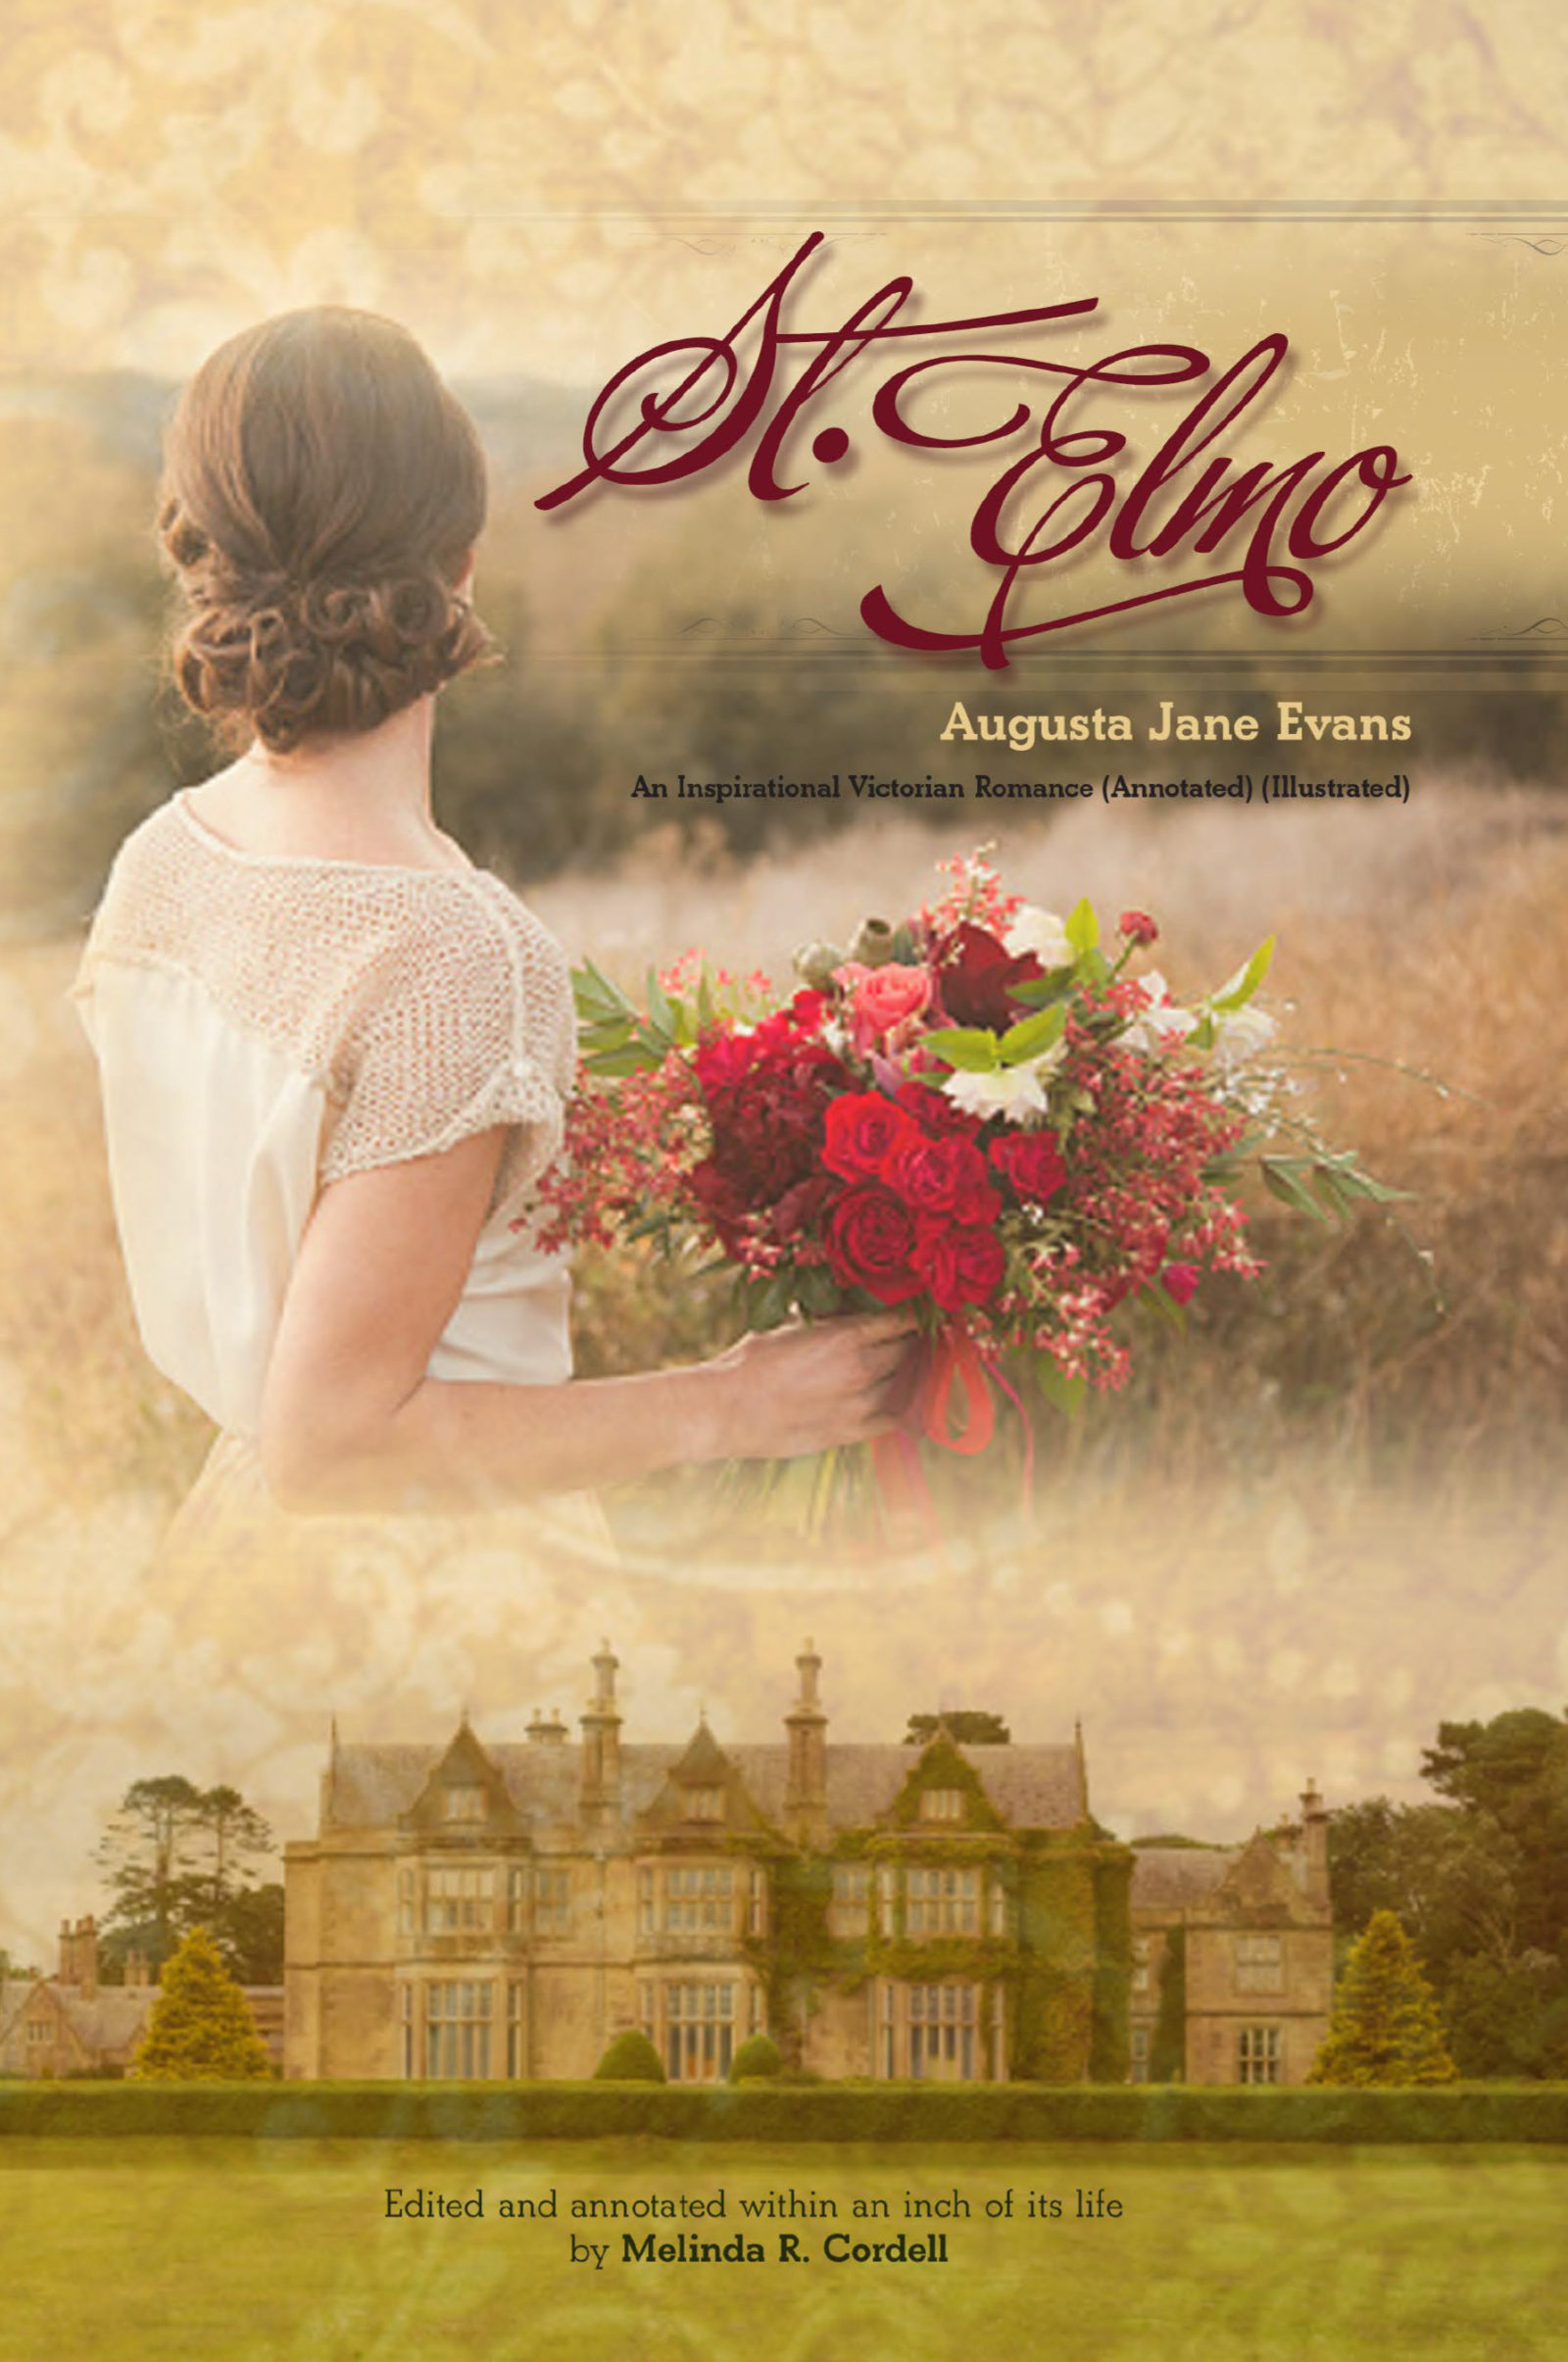 St. Elmo by Augusta Jane Evans - newly edited